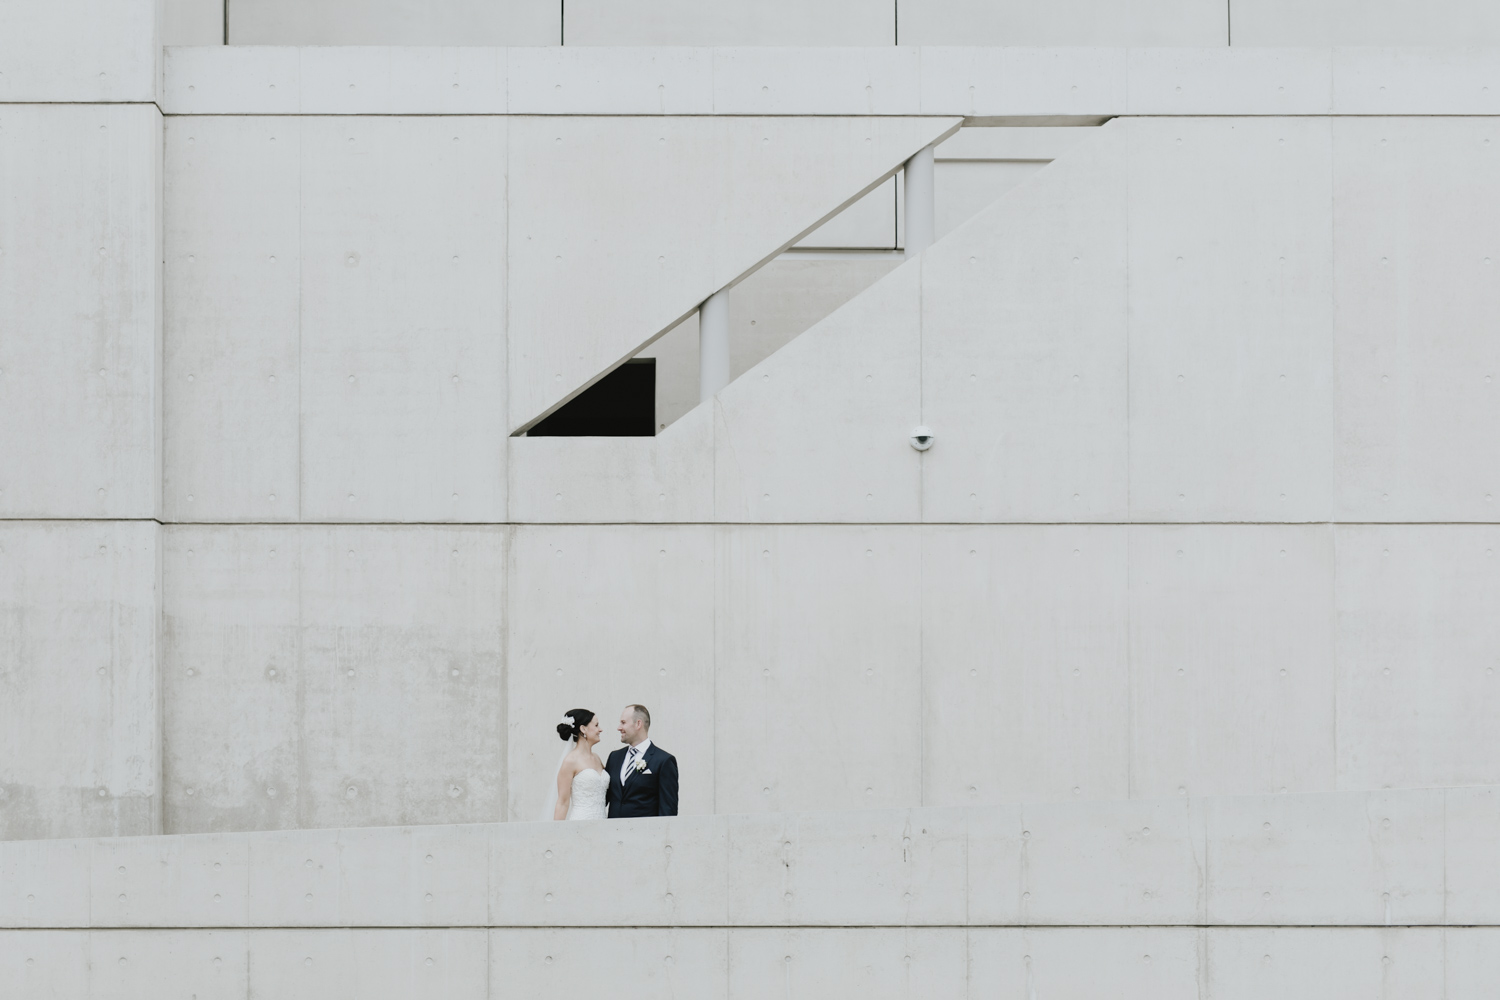 Skyspace Bridal Portraits, National Gallery of Australia Wedding photography by Jenny Wu Straight No Chaser